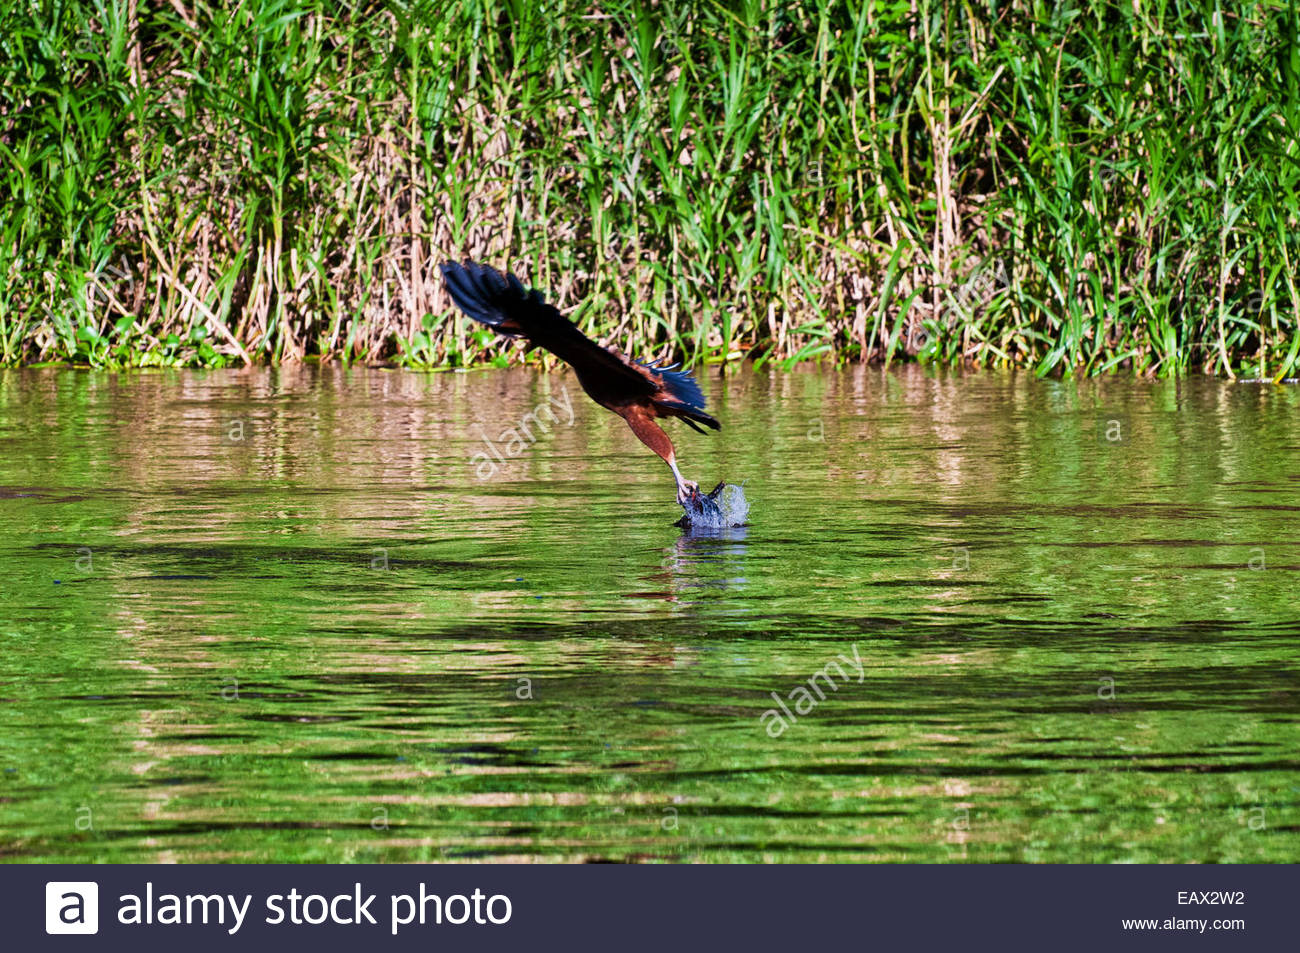 A Black-collared hawk, a bird of prey in the Accipitridae family, exits the water with a fish in its talons. - Stock Image